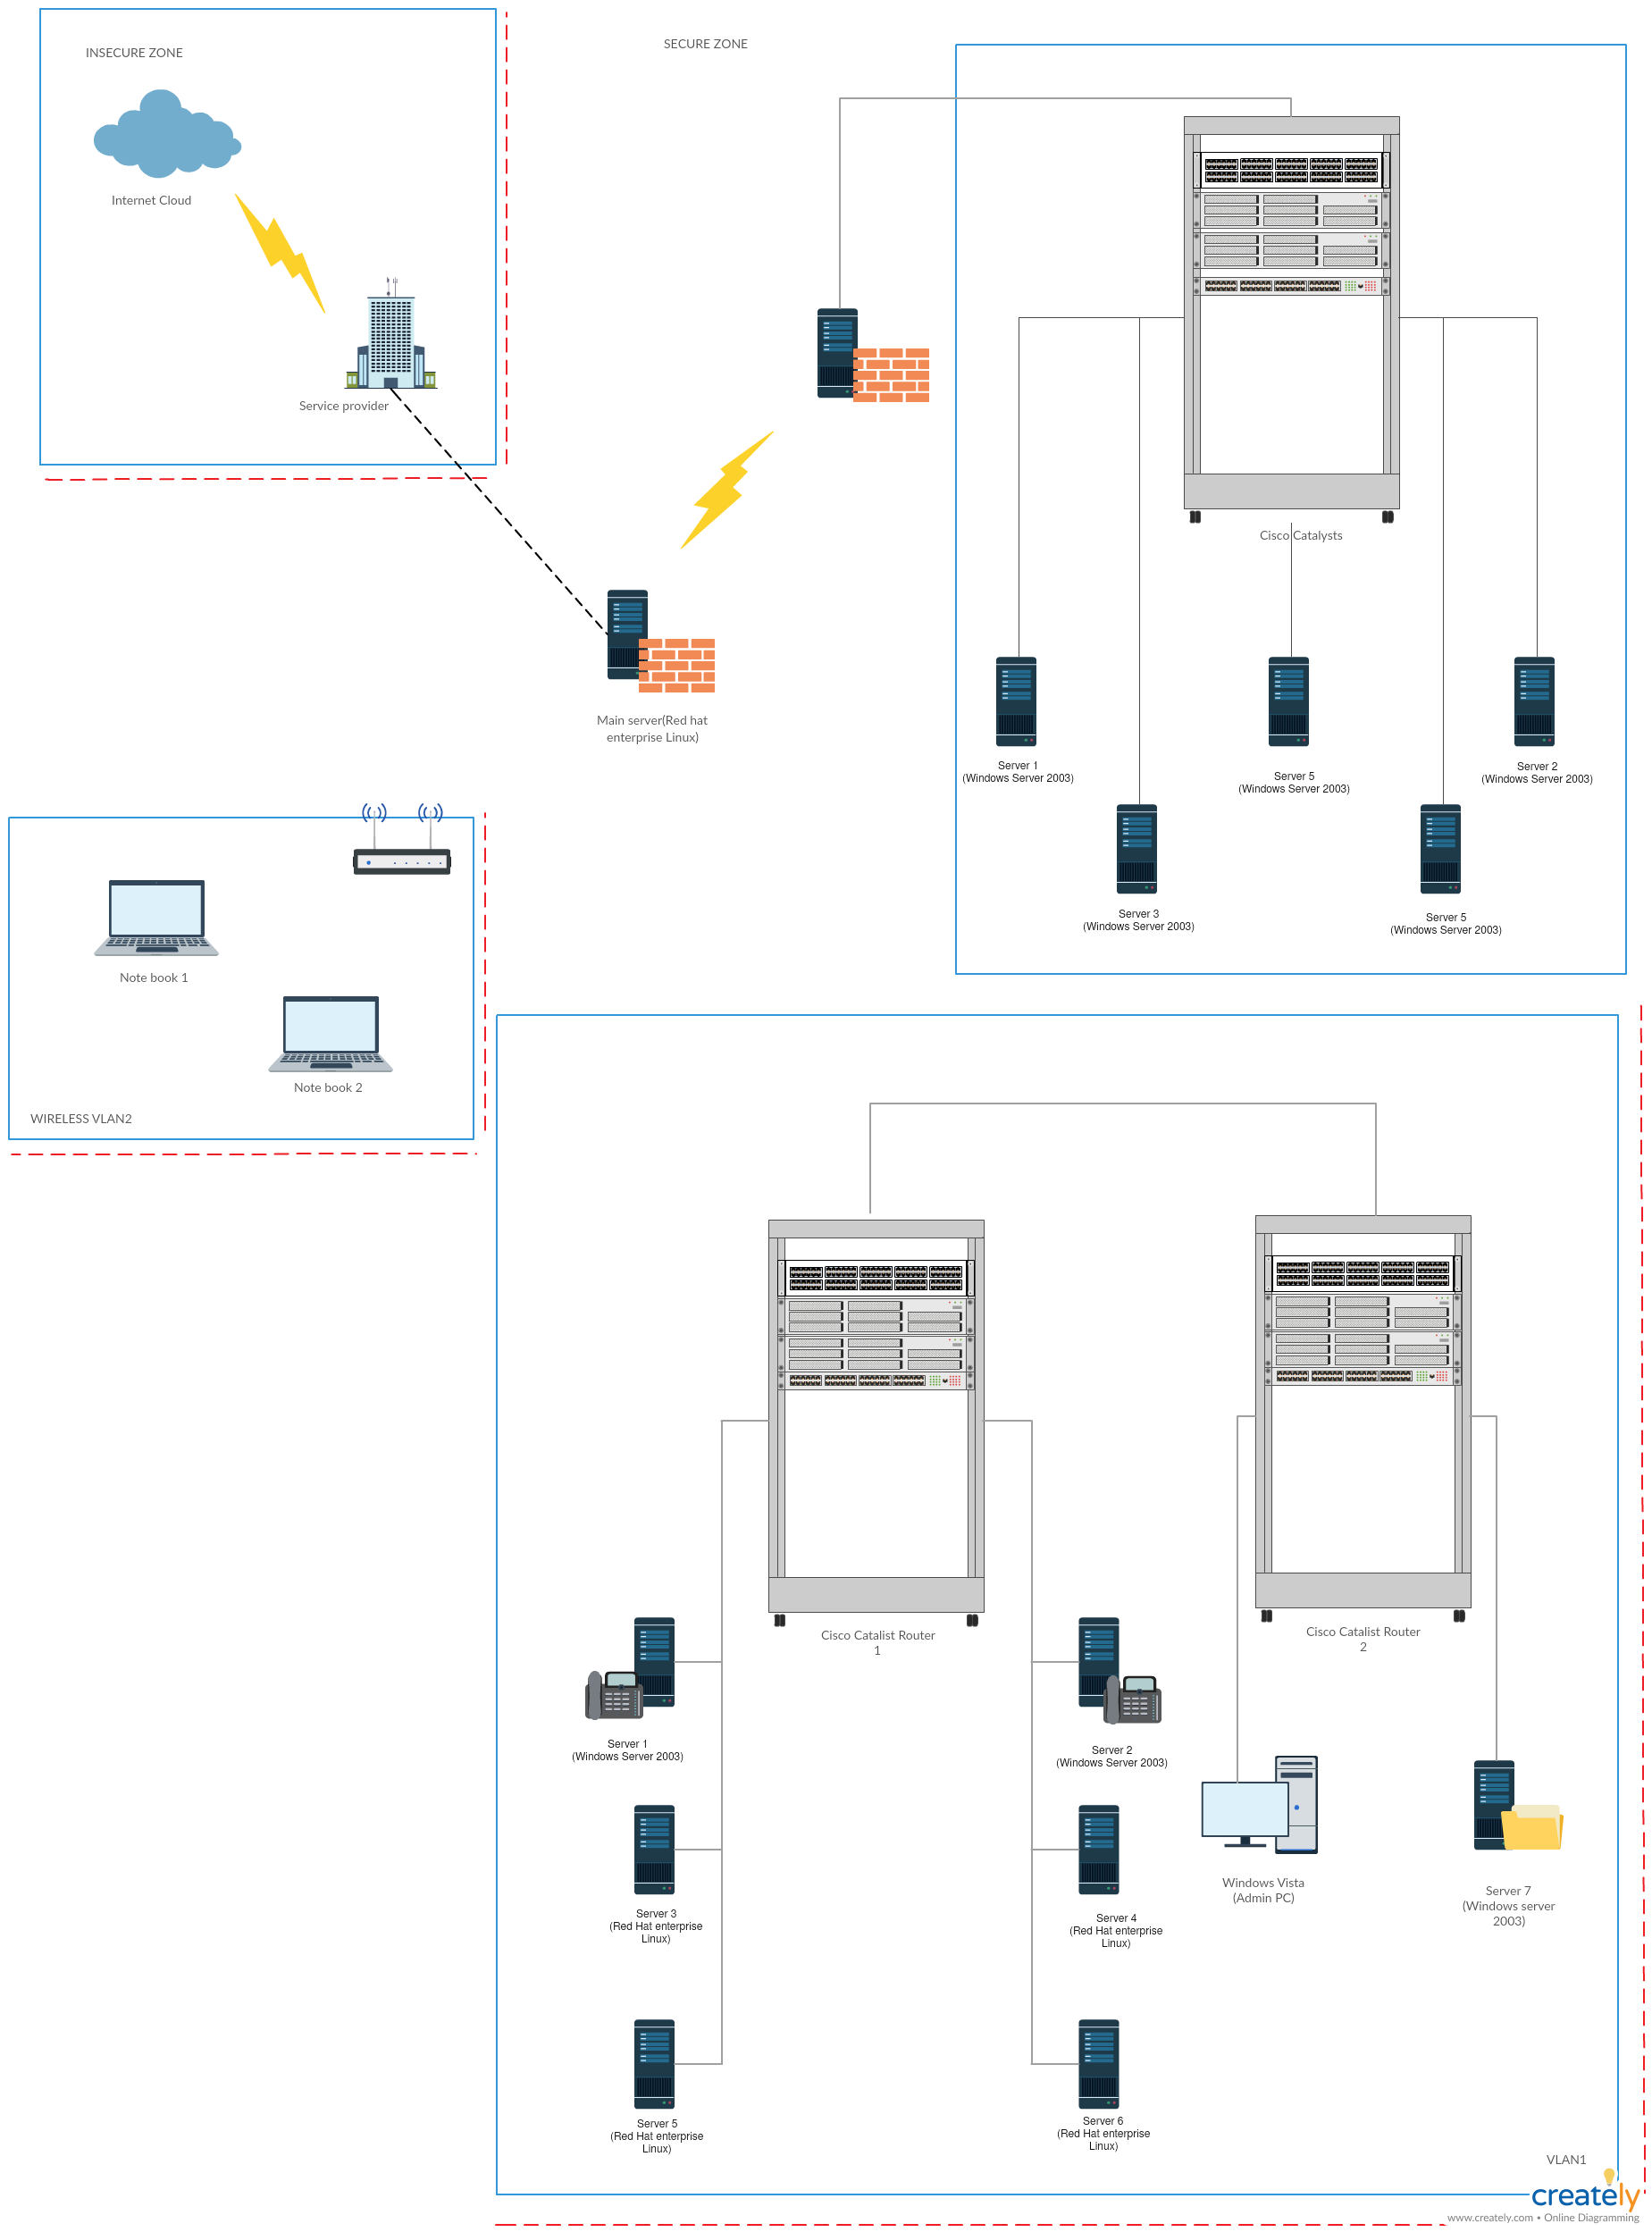 hight resolution of virtual local area network network diagram template click the image to get all the important